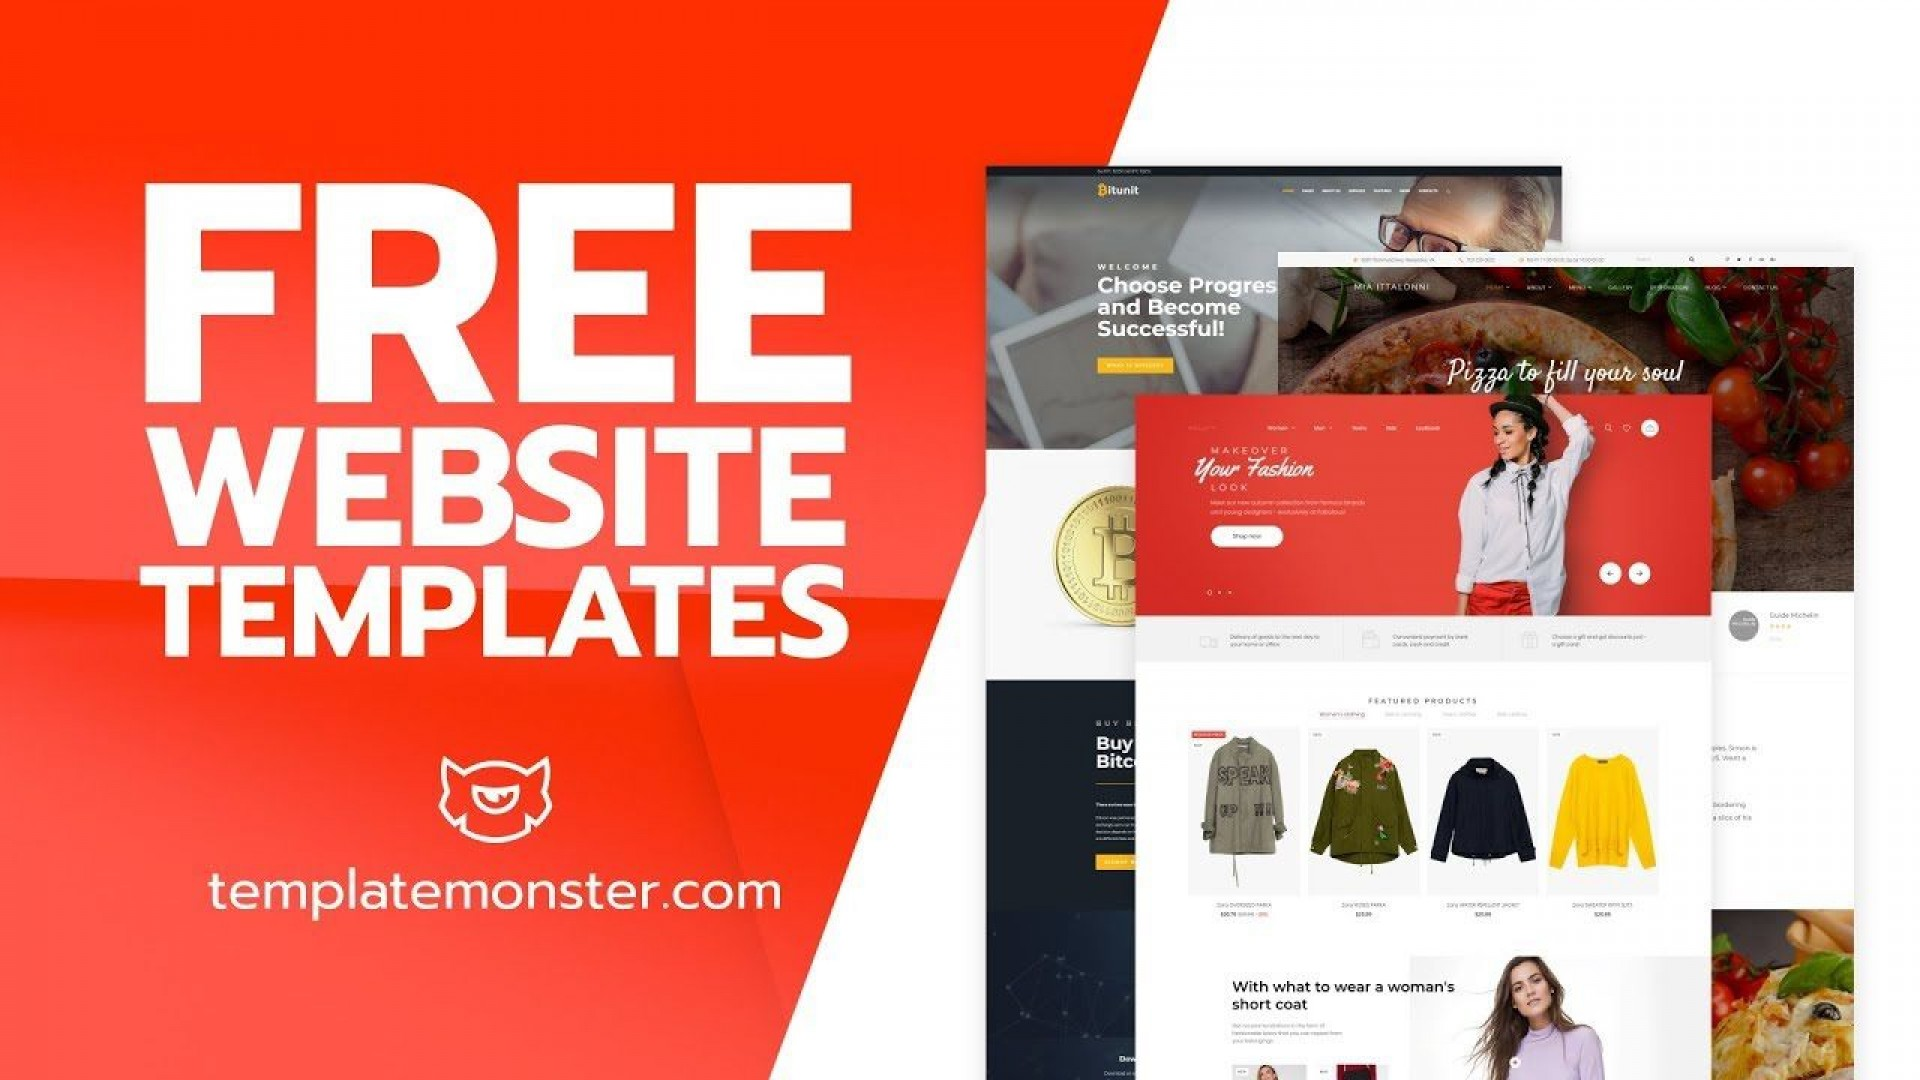 008 Simple Free Website Template Download Html And Cs Jquery For Ecommerce Concept 1920